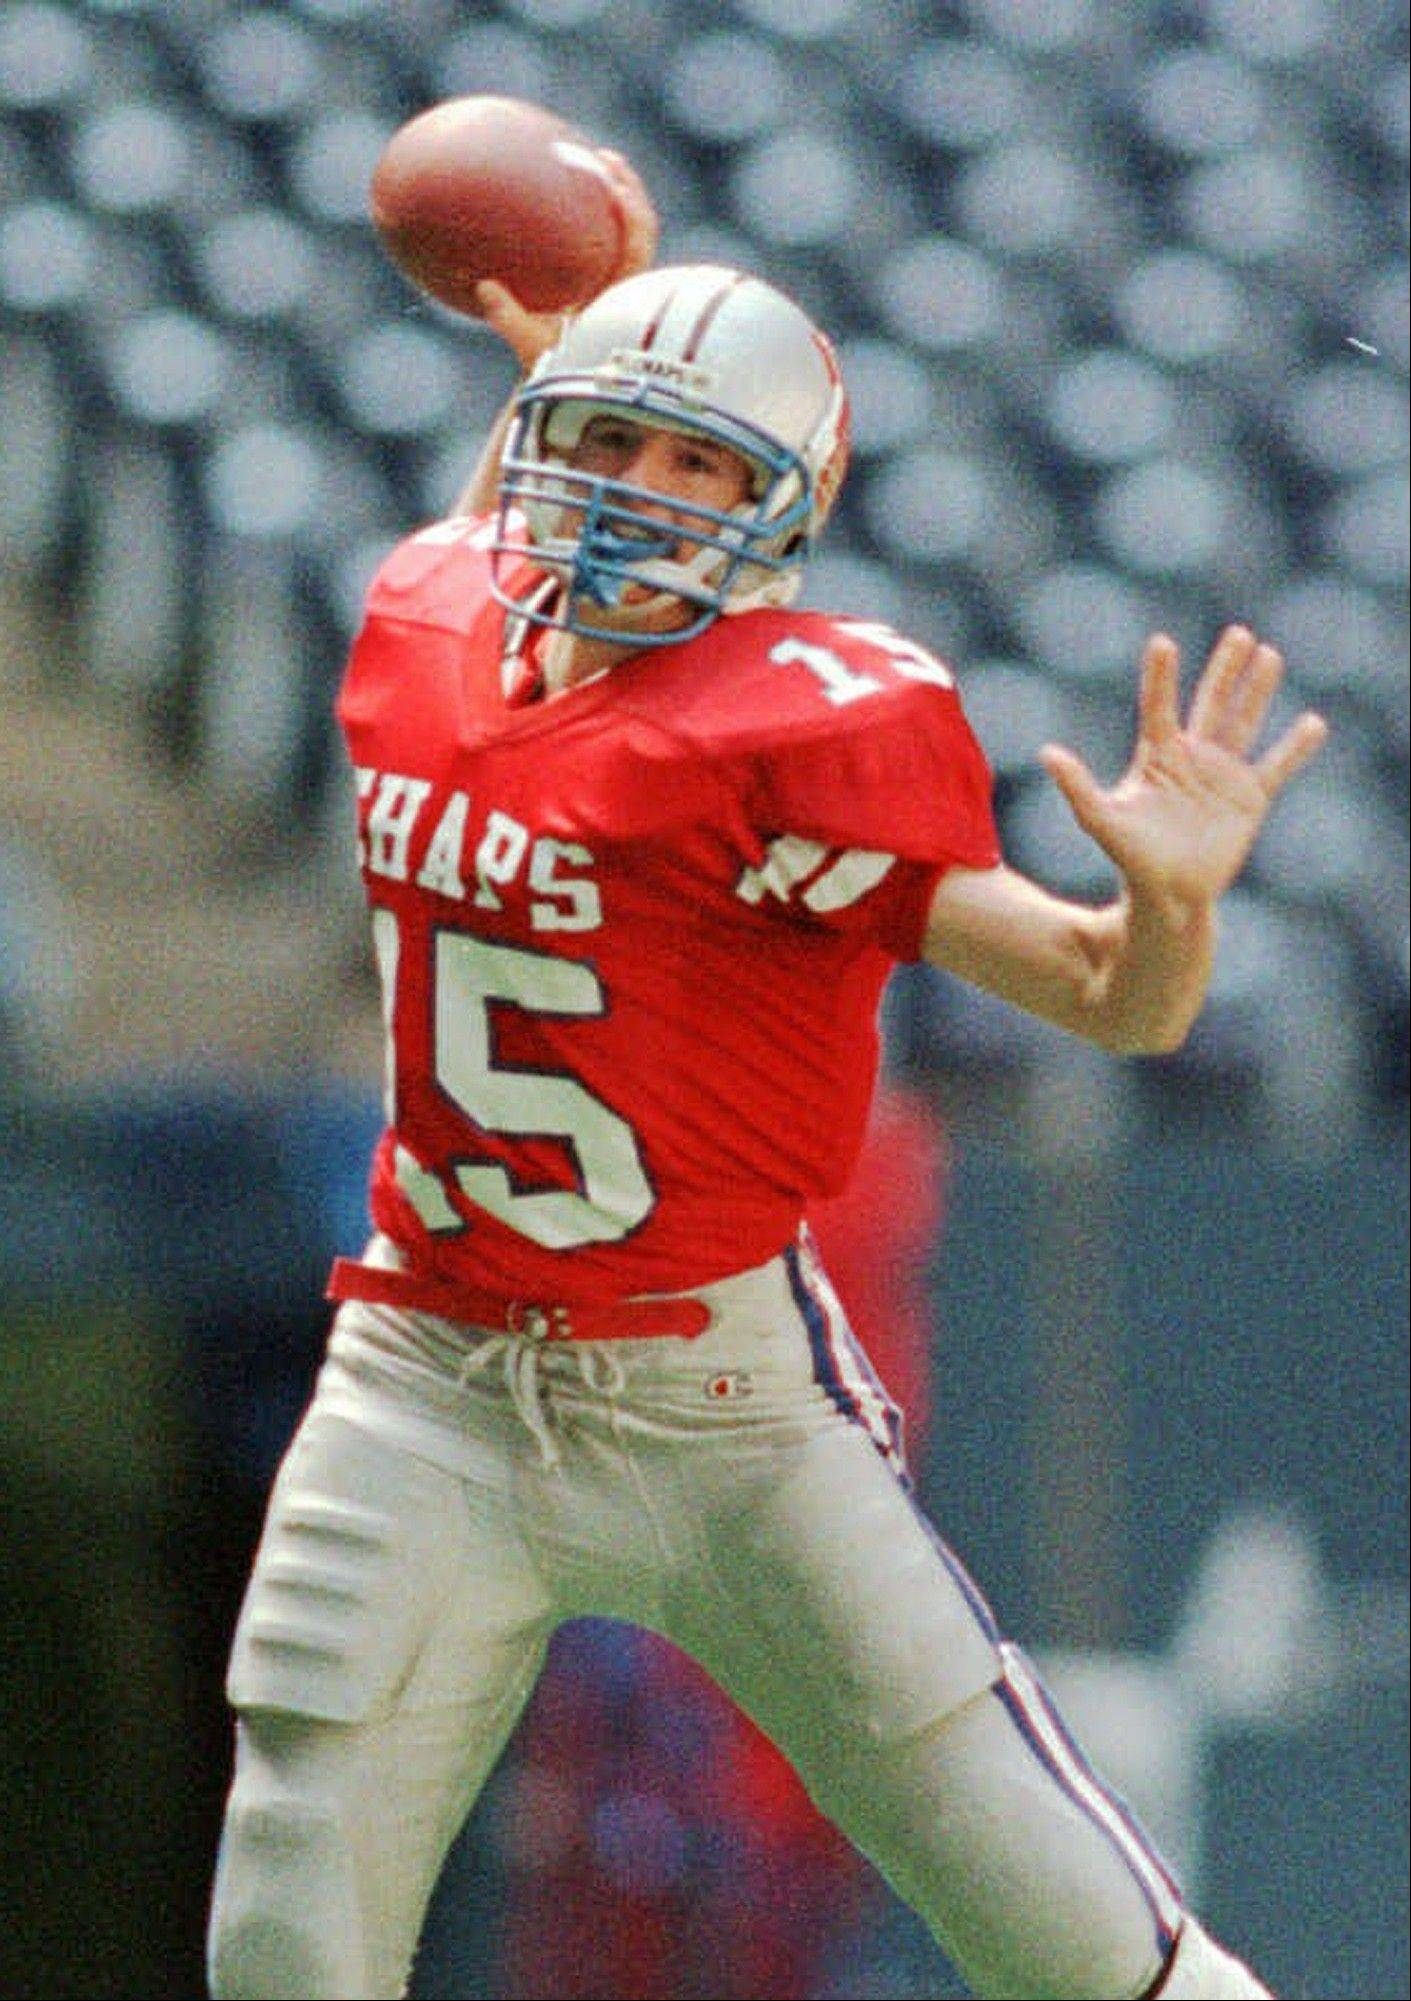 This Dec. 21, 1996 file photo shows Westlake High School quarterback Drew Brees preparing to pass against Abilene Cooper High School during a game in Austin, Texas. Ten years after Brees led Westlake High School to victory in the Texas state championship game, Nick Foles broke several of his passing records but lost in the title game. The two quarterbacks meet in an NFC wild-card game on Saturday.